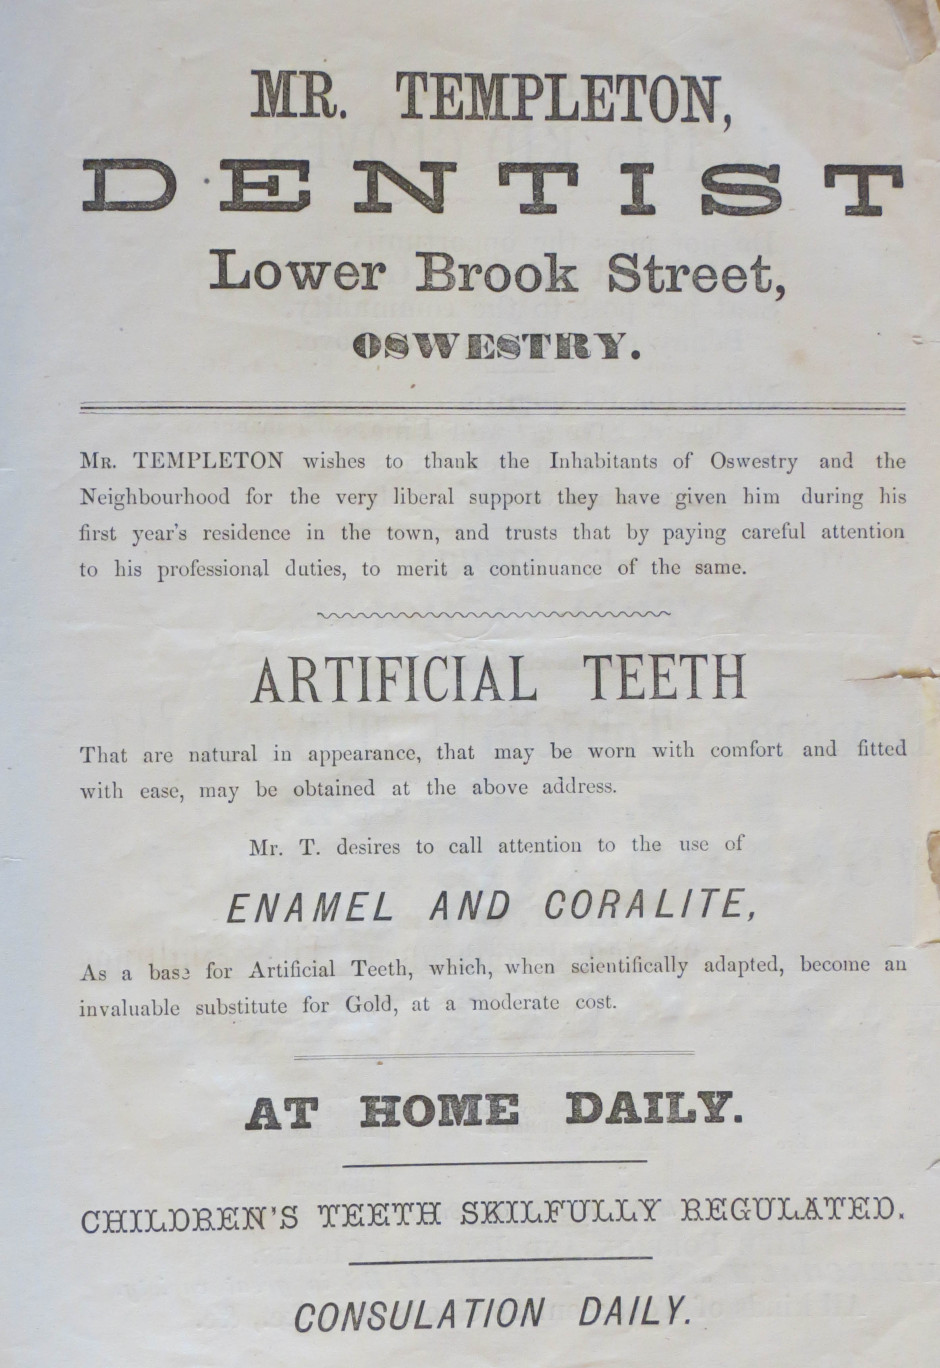 PH-O-5-26-3 - Templeton Dentist 1873